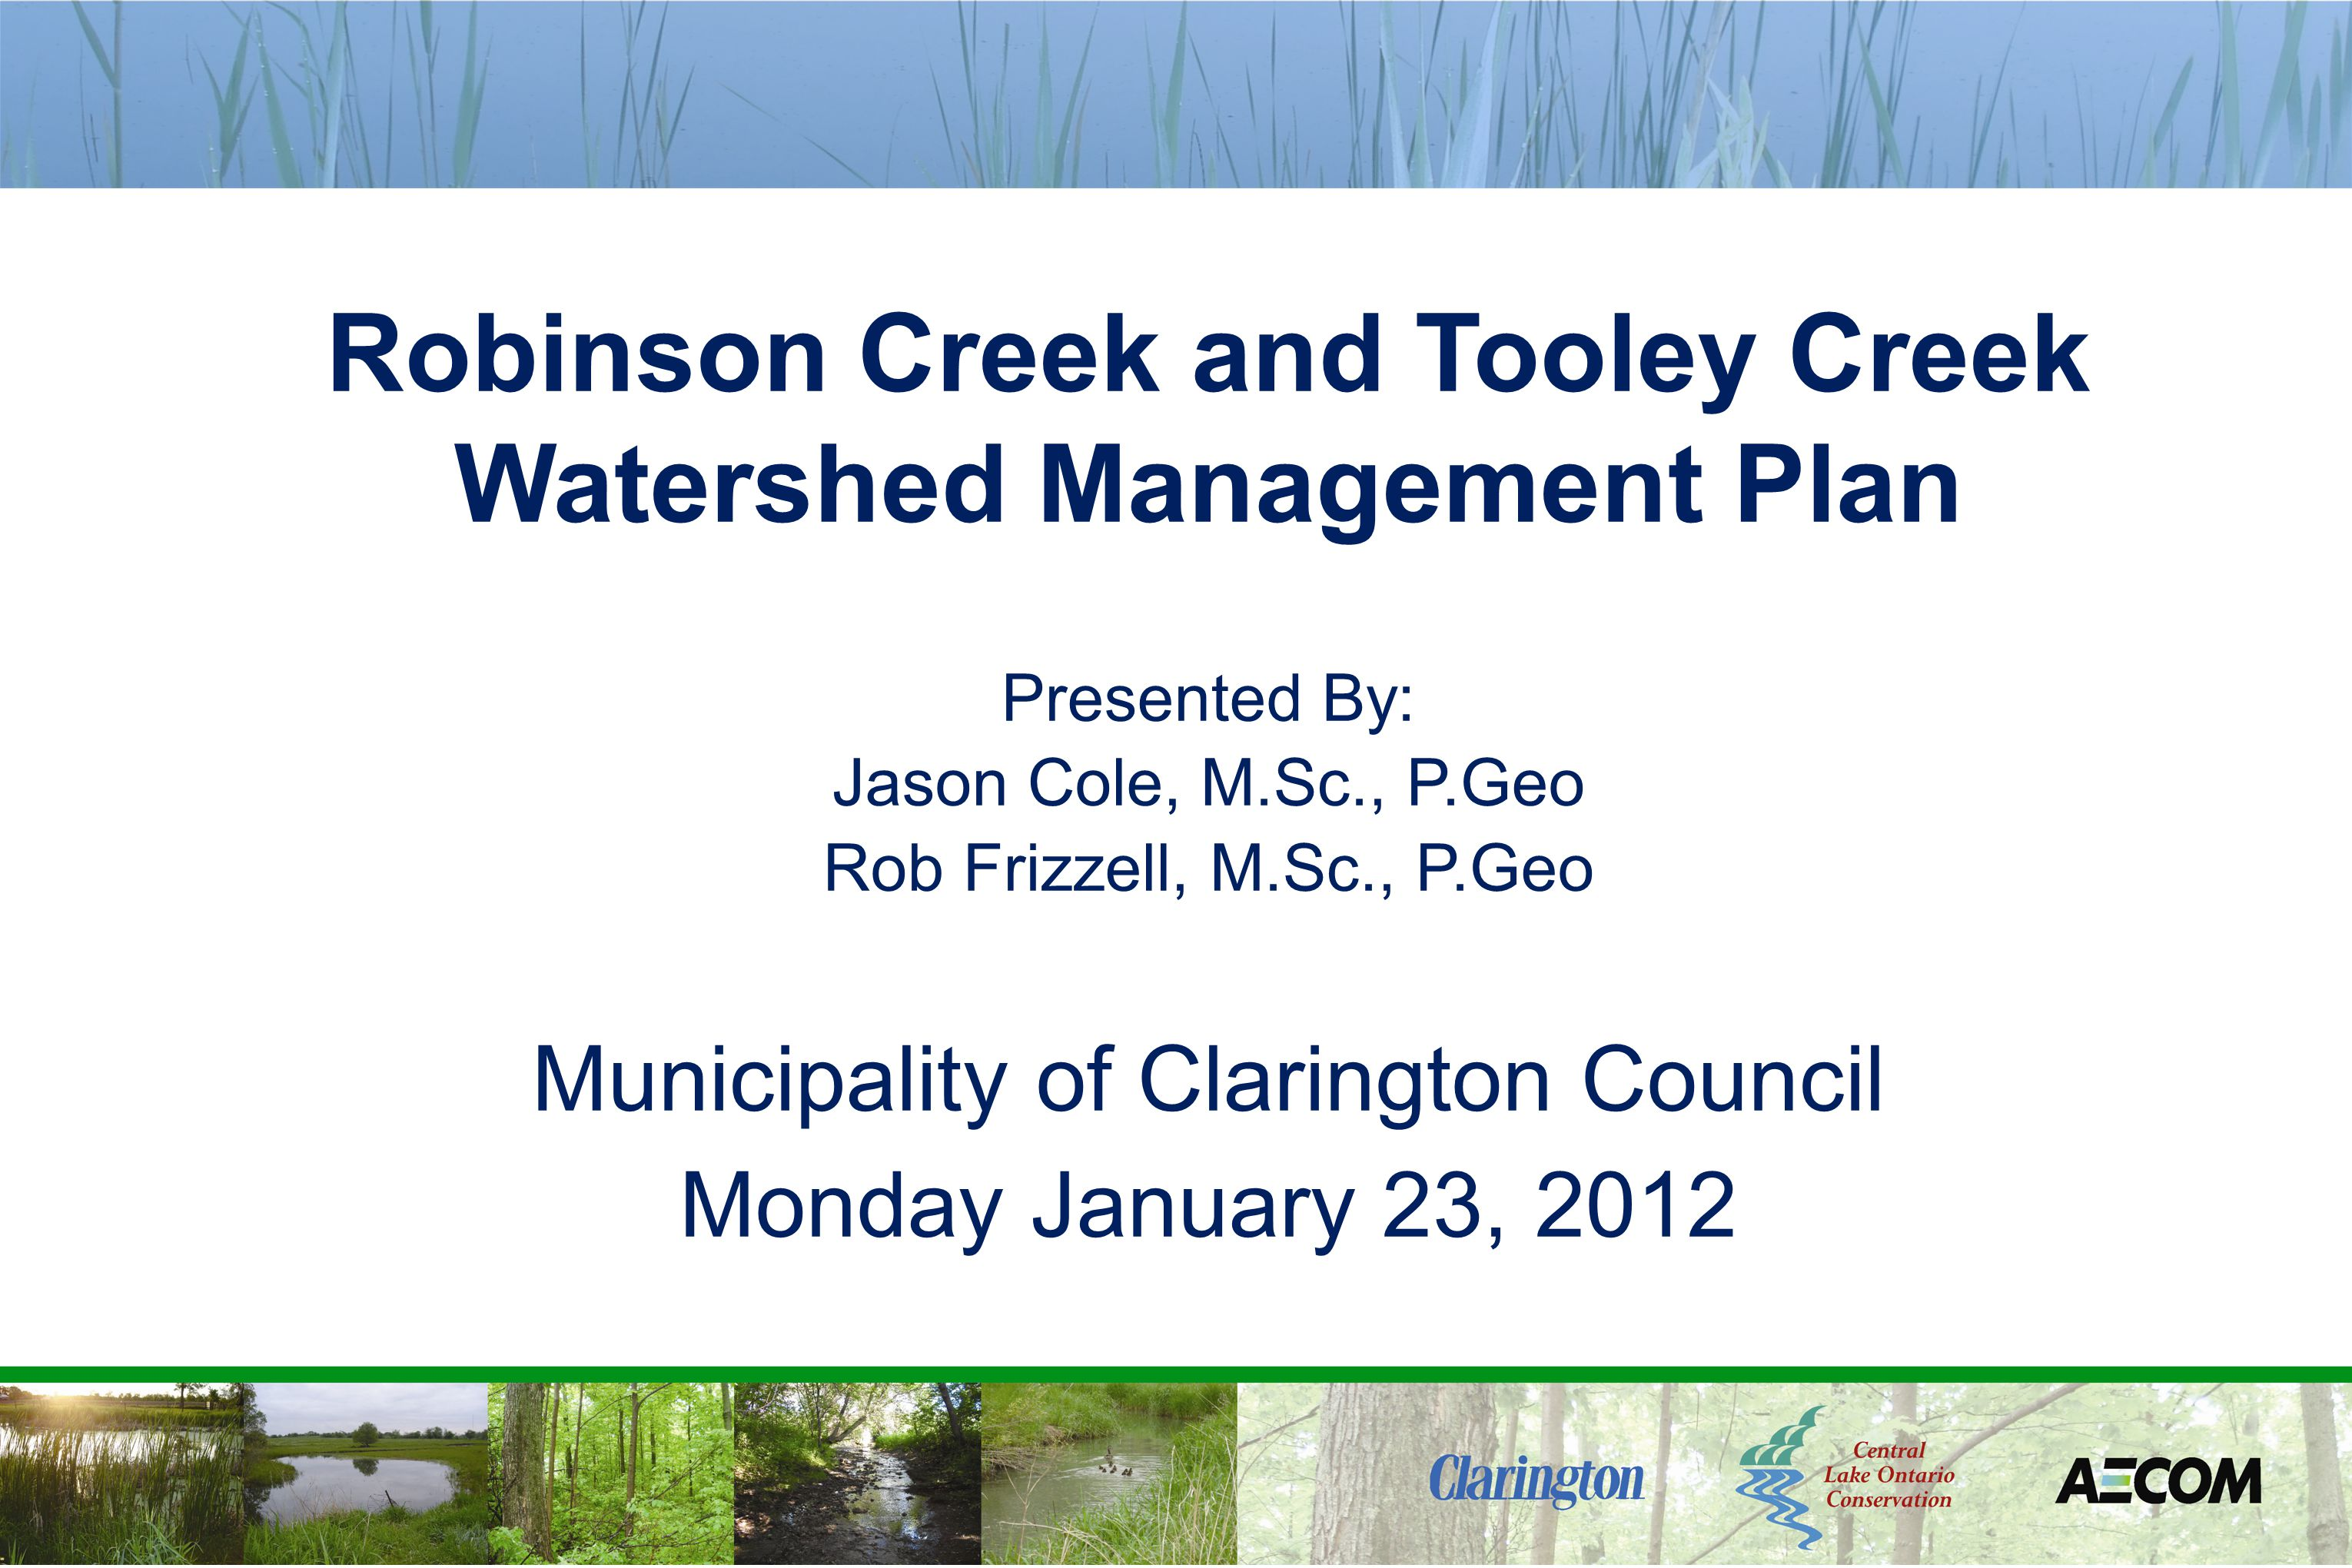 Robinson Creek and Tooley Creek Watershed Management Plan Presented By: Jason Cole, M.Sc., P.Geo Rob Frizzell, M.Sc., P.Geo Municipality of Clarington Council Monday January 23, 2012